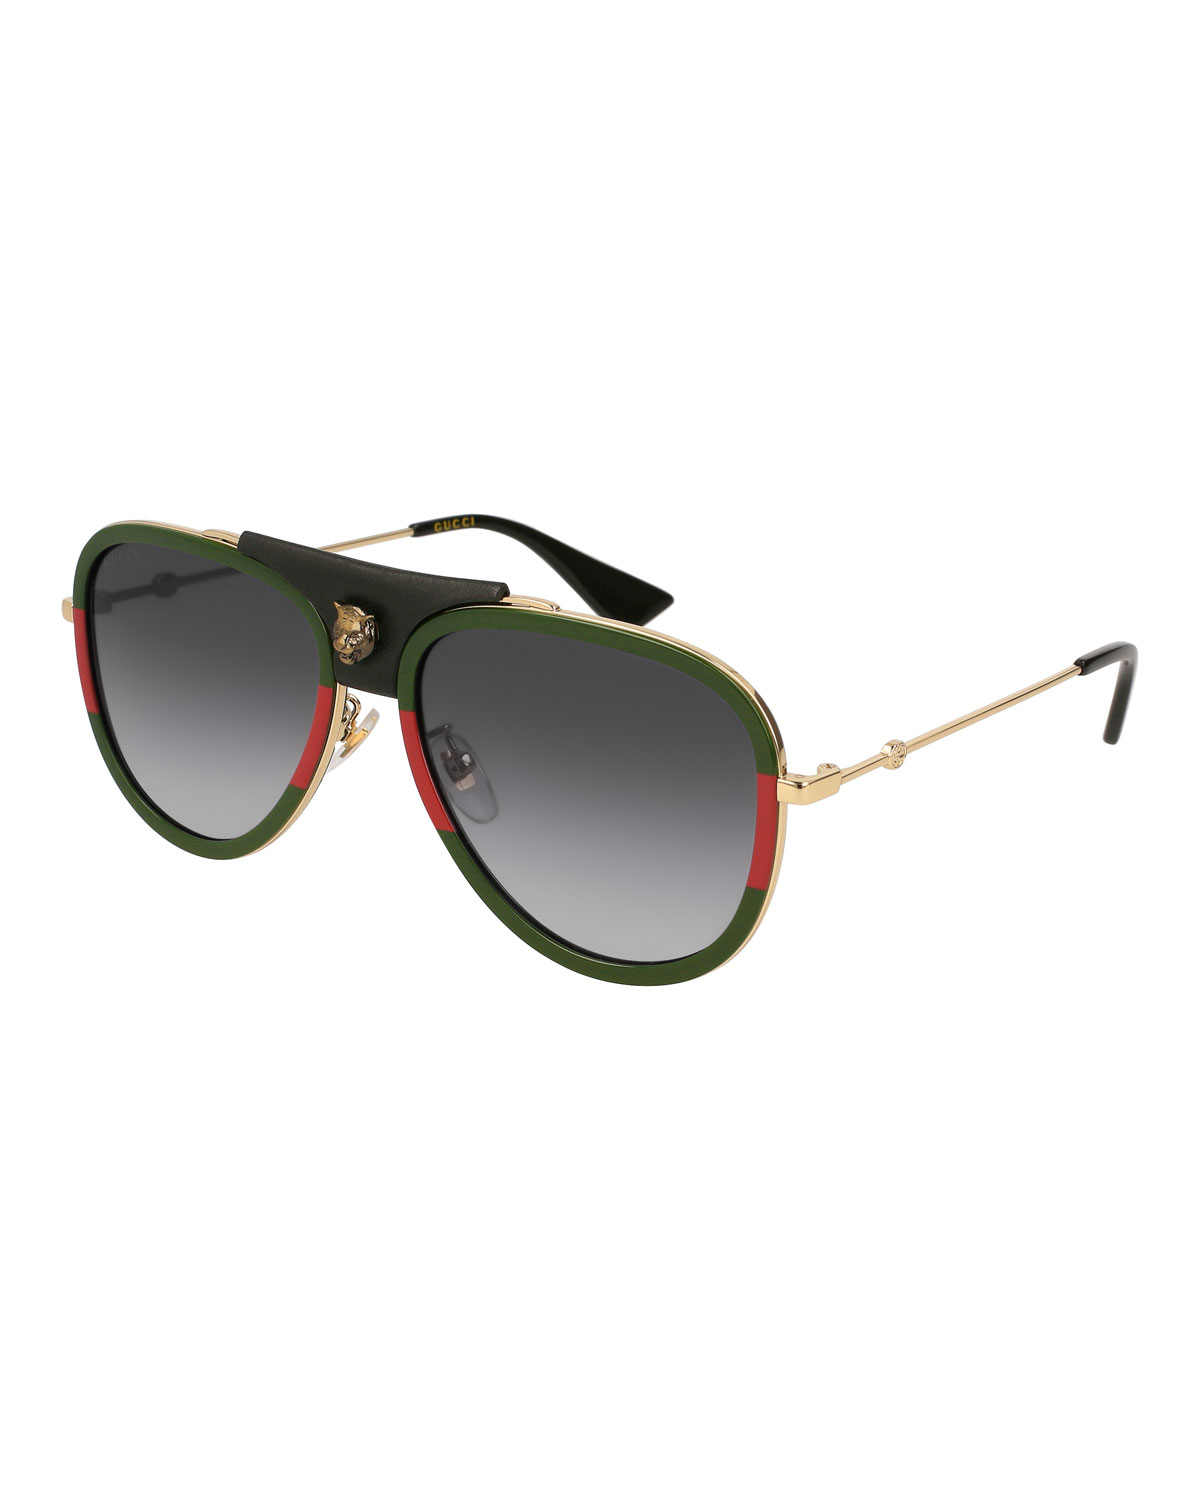 d0bf317a20 Gucci Gradient Web Aviator Sunglasses w  Leather Trim